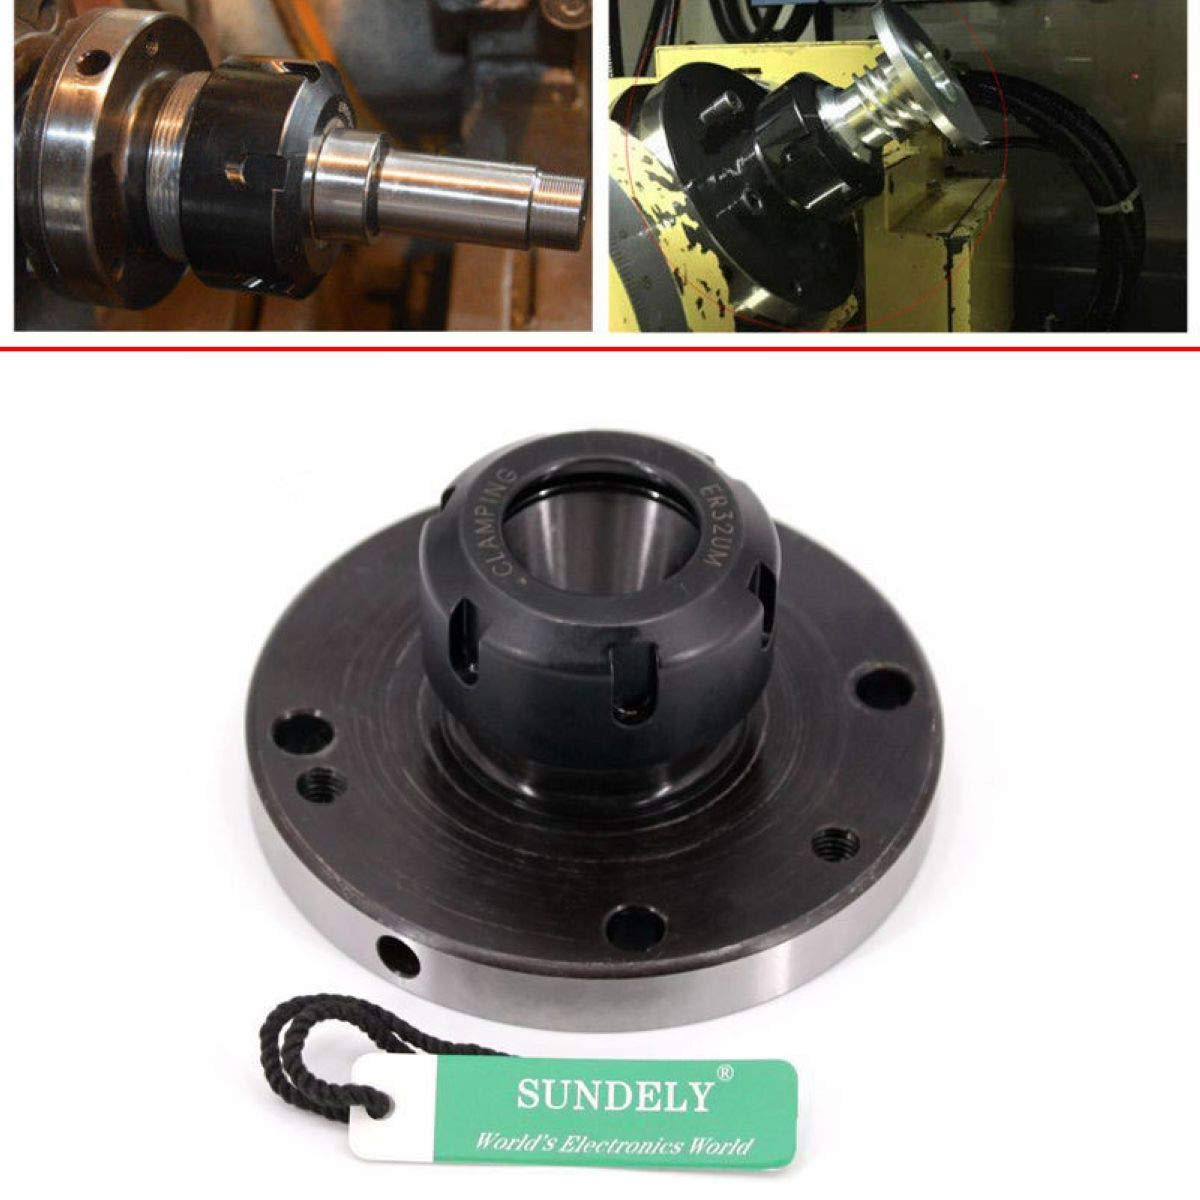 SUNDELY/® ER-32 Collet Chuck 100MM DIAMETER Compact Lathe Tight Tolerance For Milling